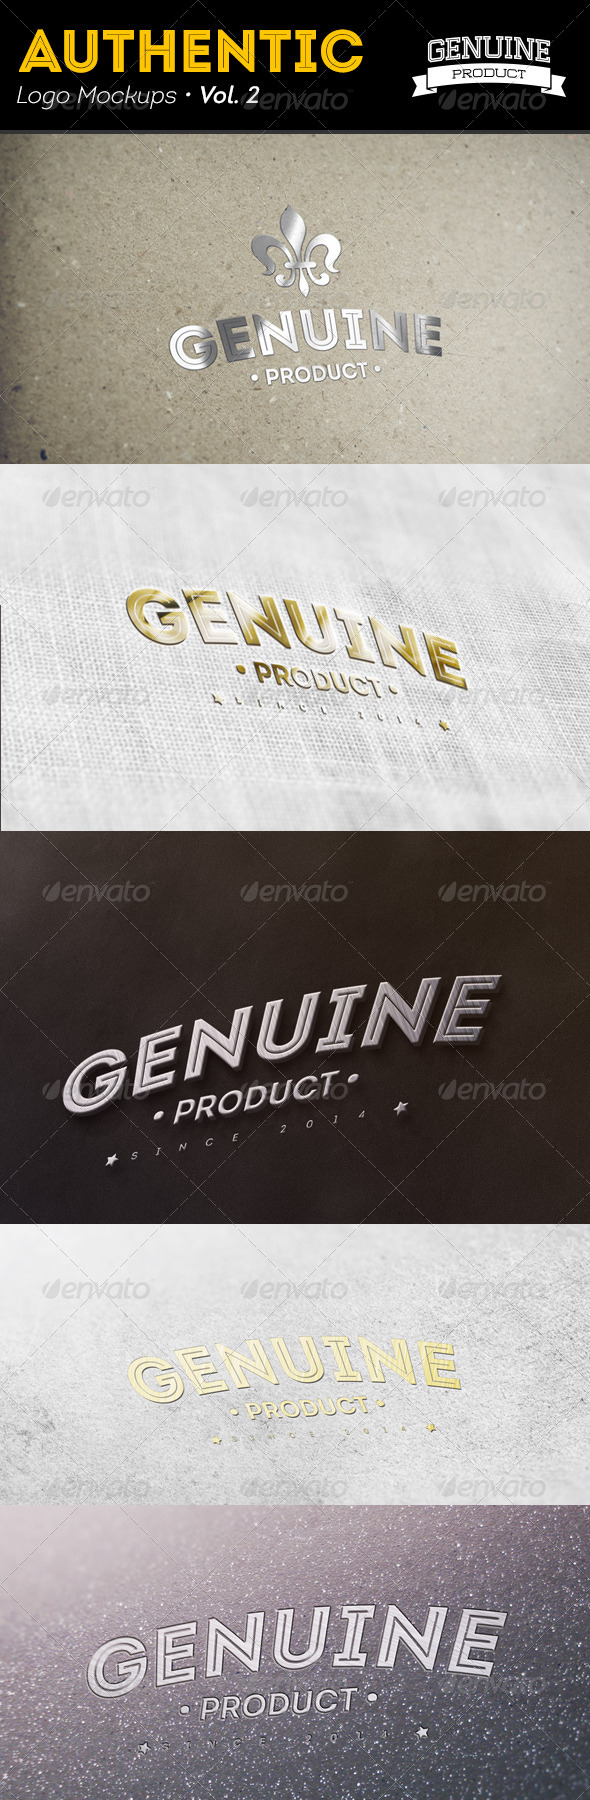 Authentic Logo Mockups Vol. 2 - Logo Product Mock-Ups